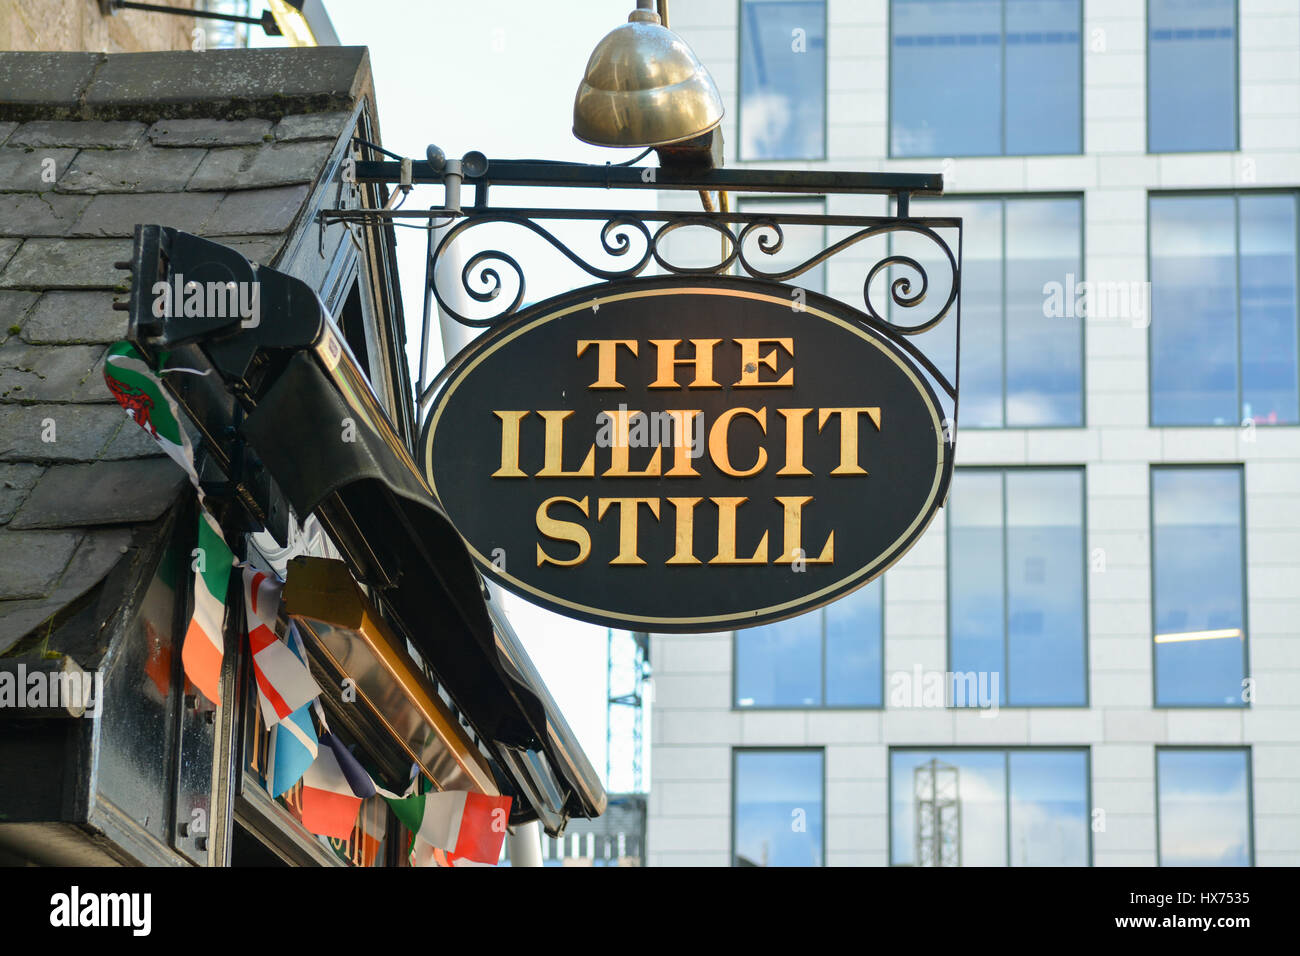 The Illicit Still, guestrow, Aberdeen, Scotland, UK - Stock Image